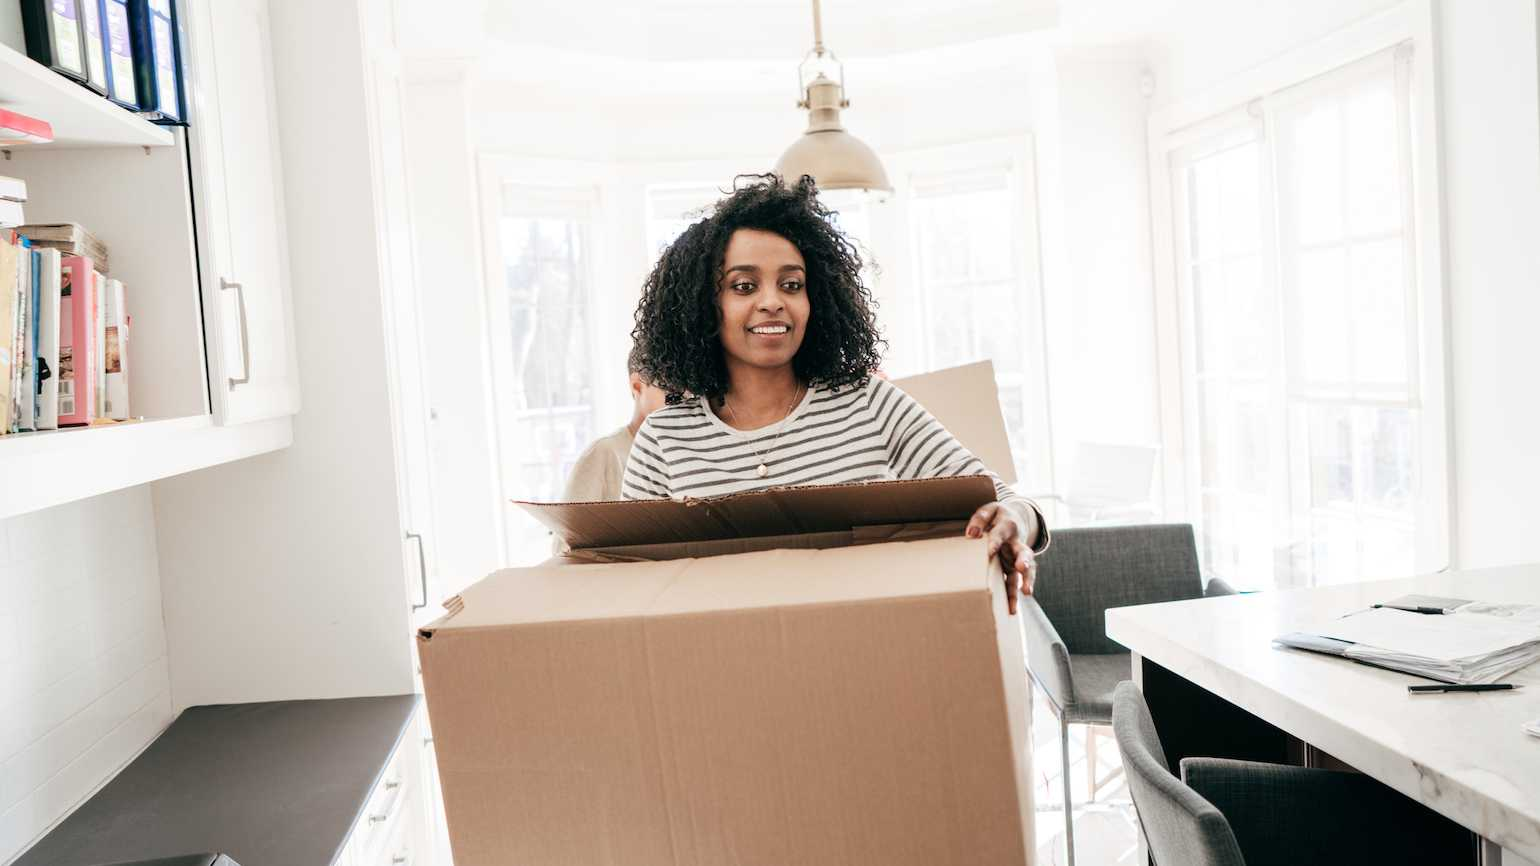 Decluttering the house